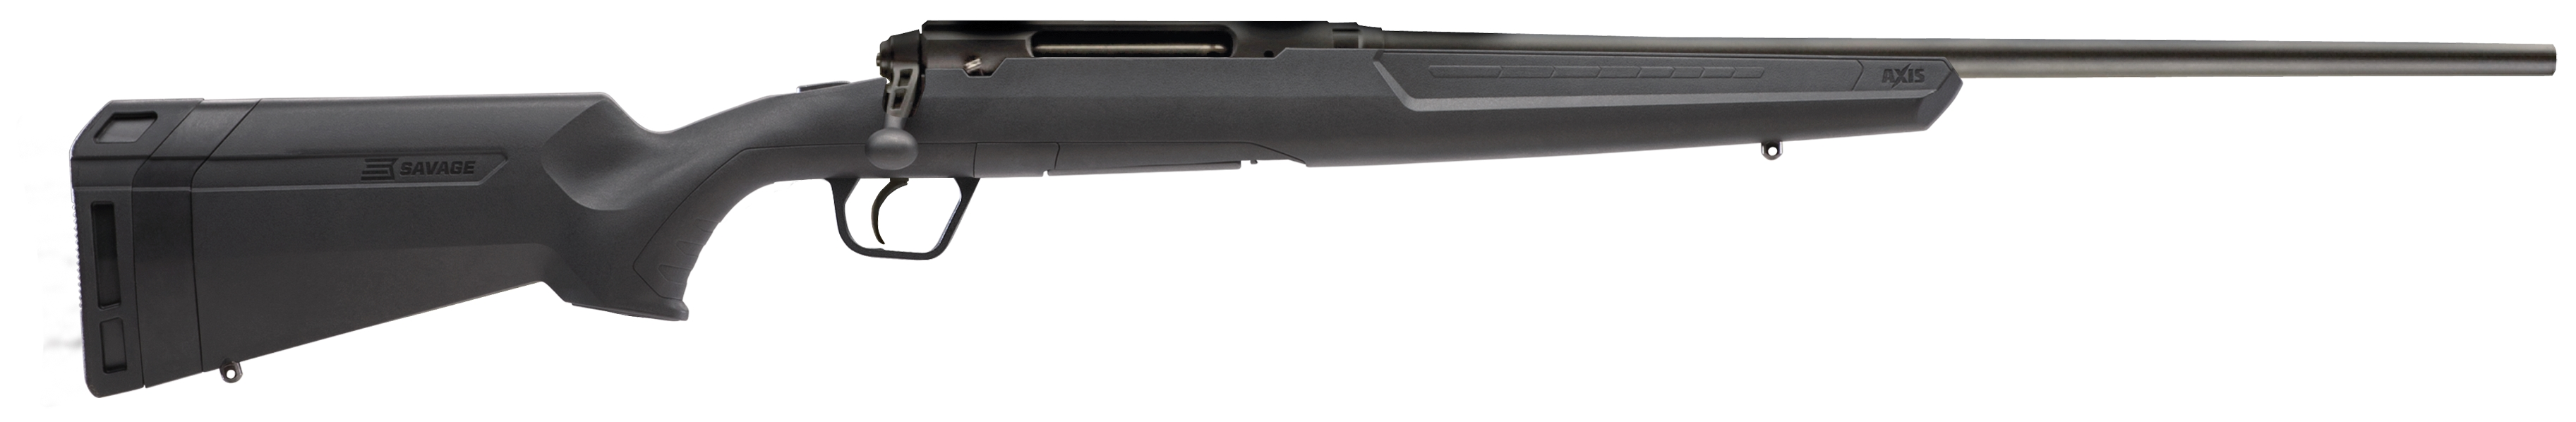 Savage Arms Axis 223 Rem